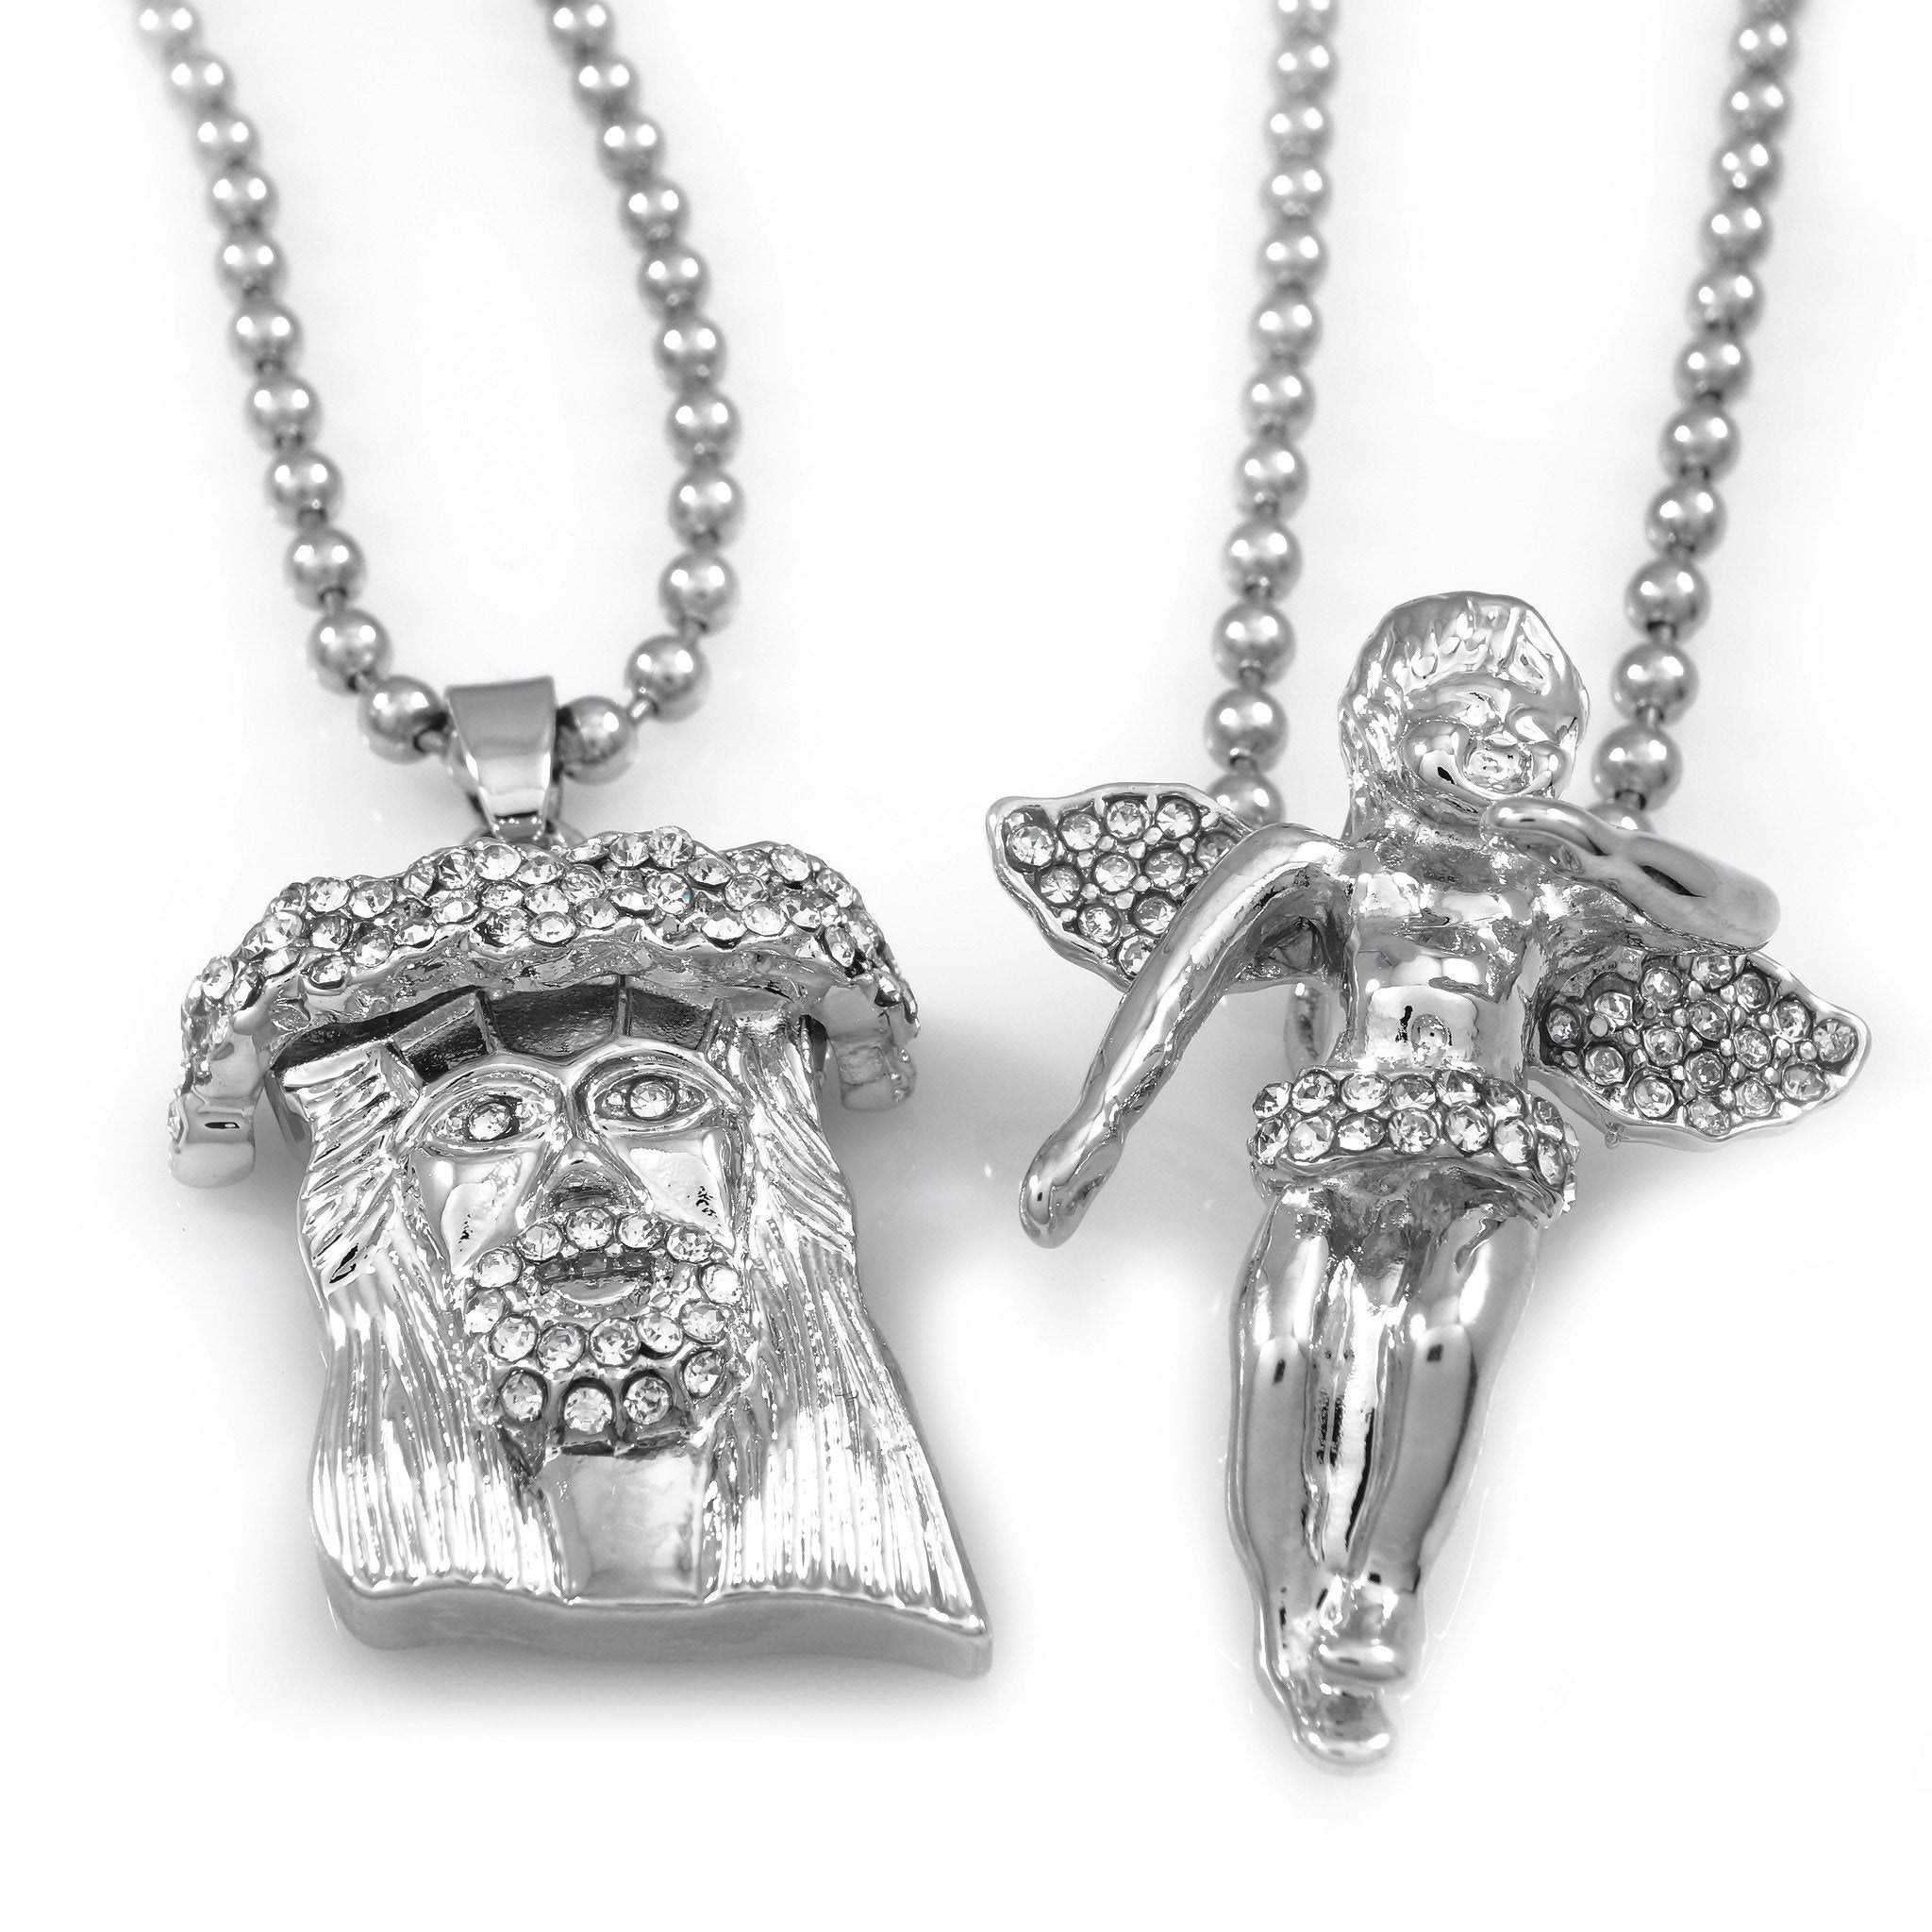 Affordable 18k Iced Out White Gold Angel And Jesus Piece Combo With Hip Hop Chain - White Background